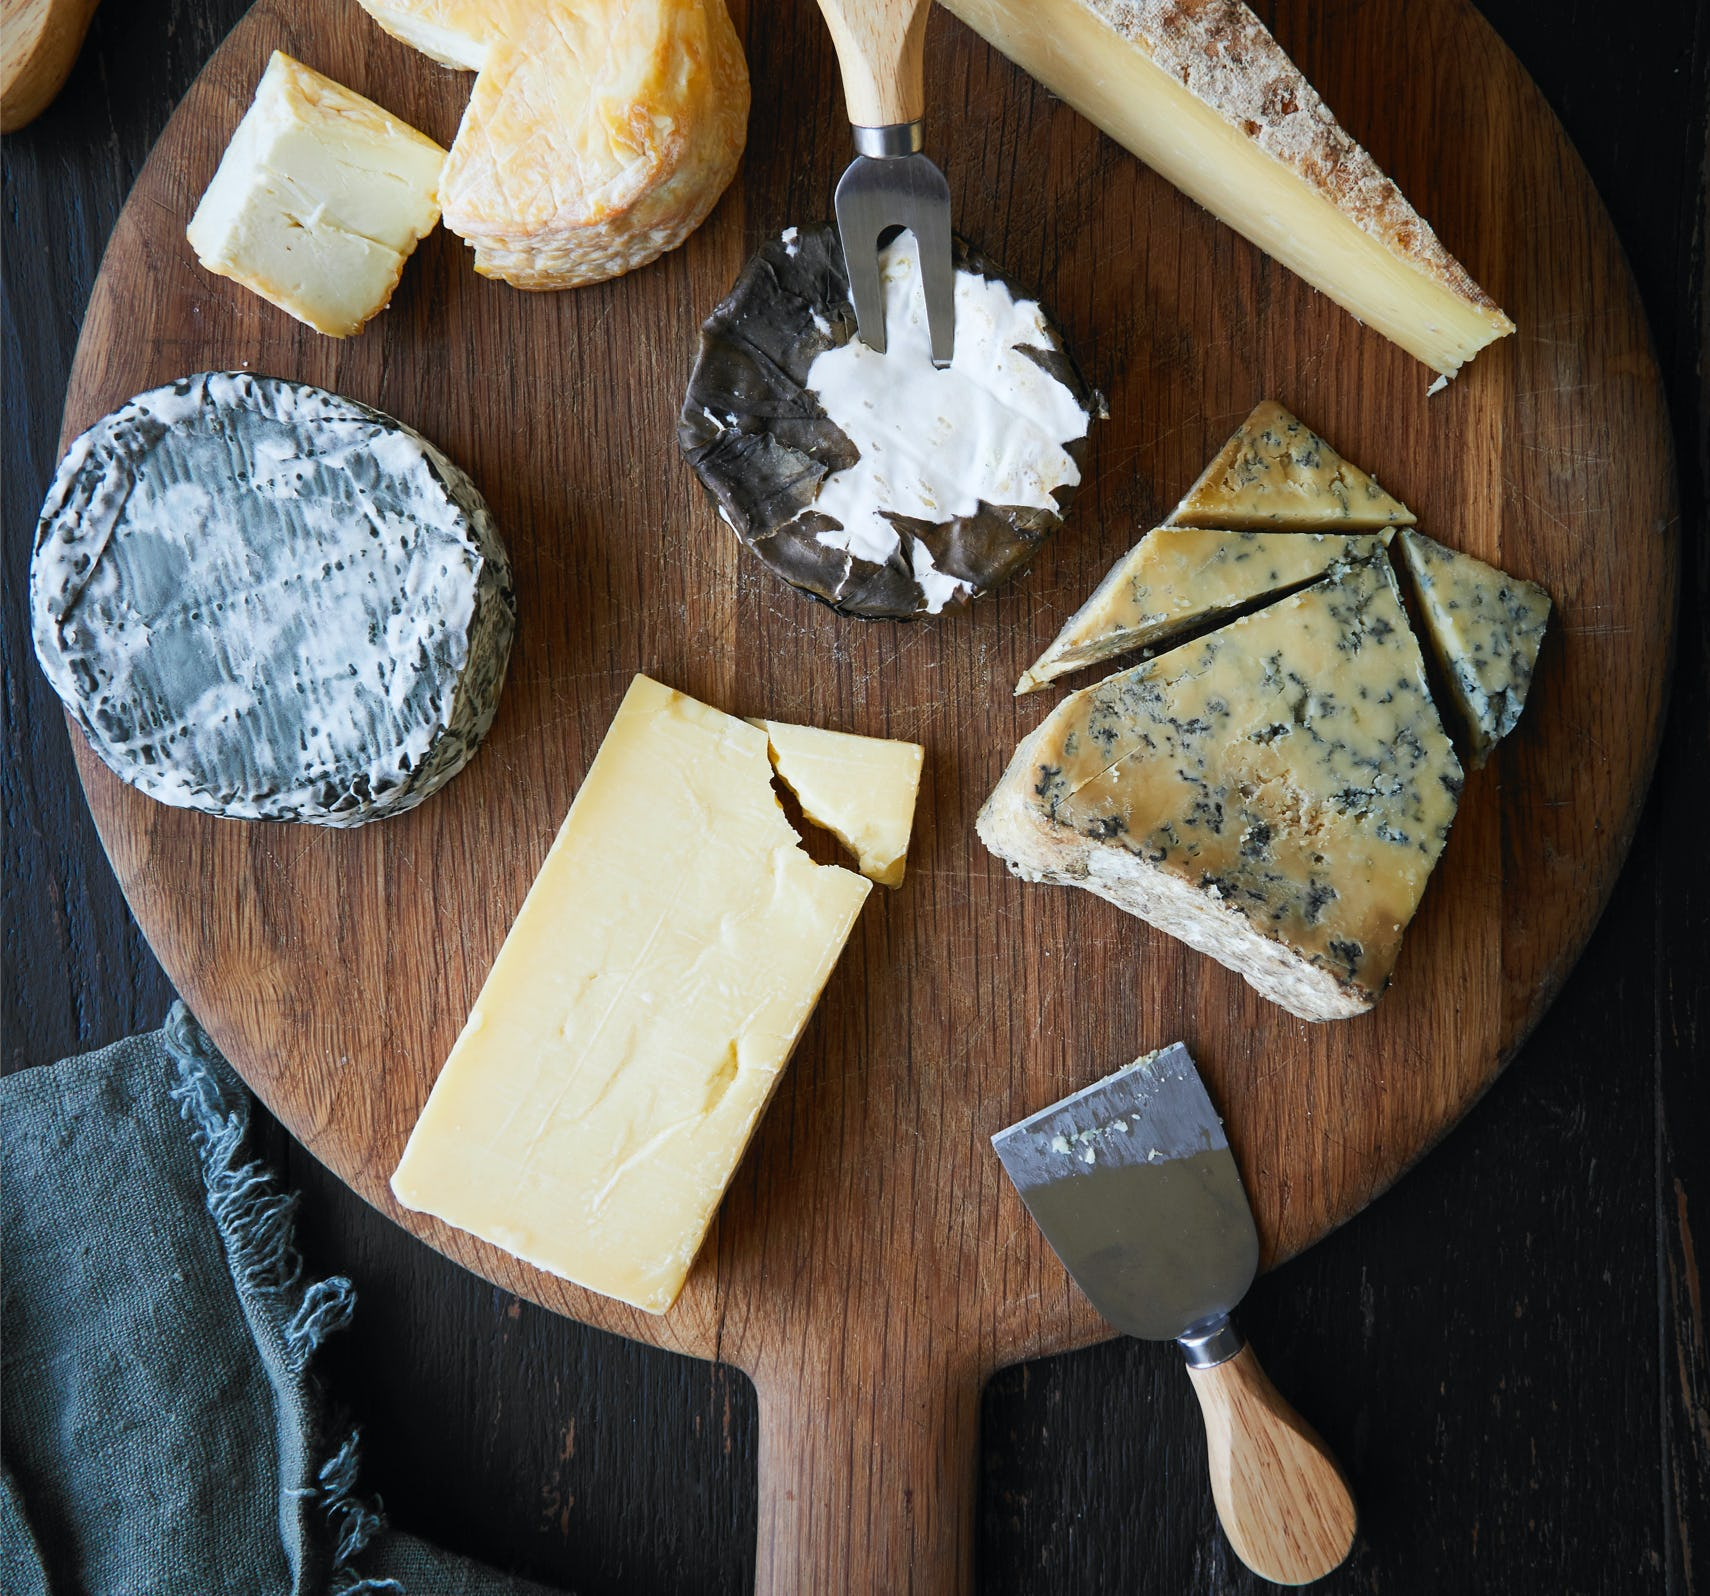 Build the ultimate cheeseboard